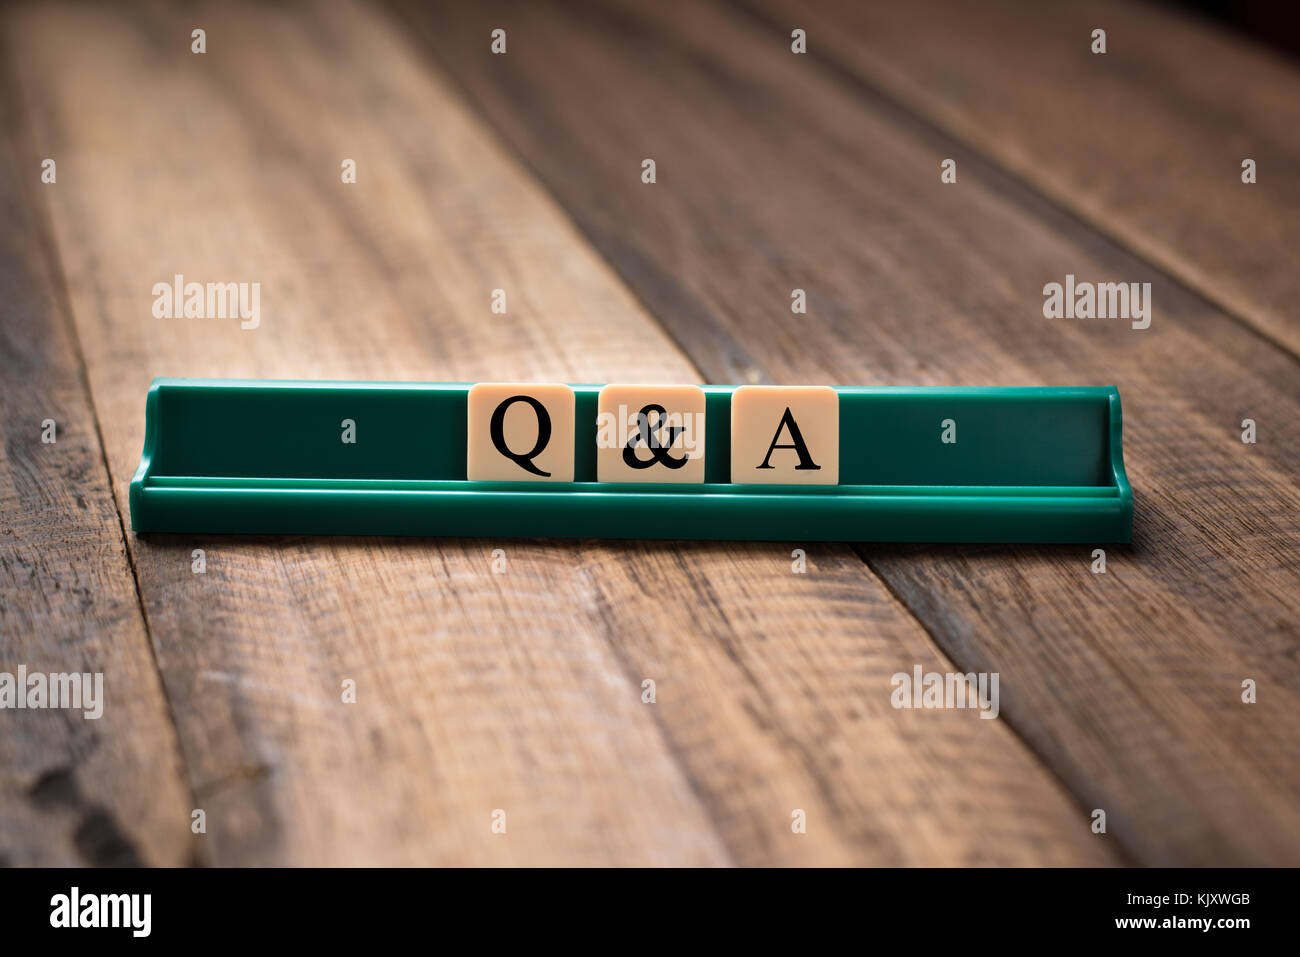 Queations and Answers Q&A concept. Q&A letter on alphabet tiles on wooden table - Stock Image